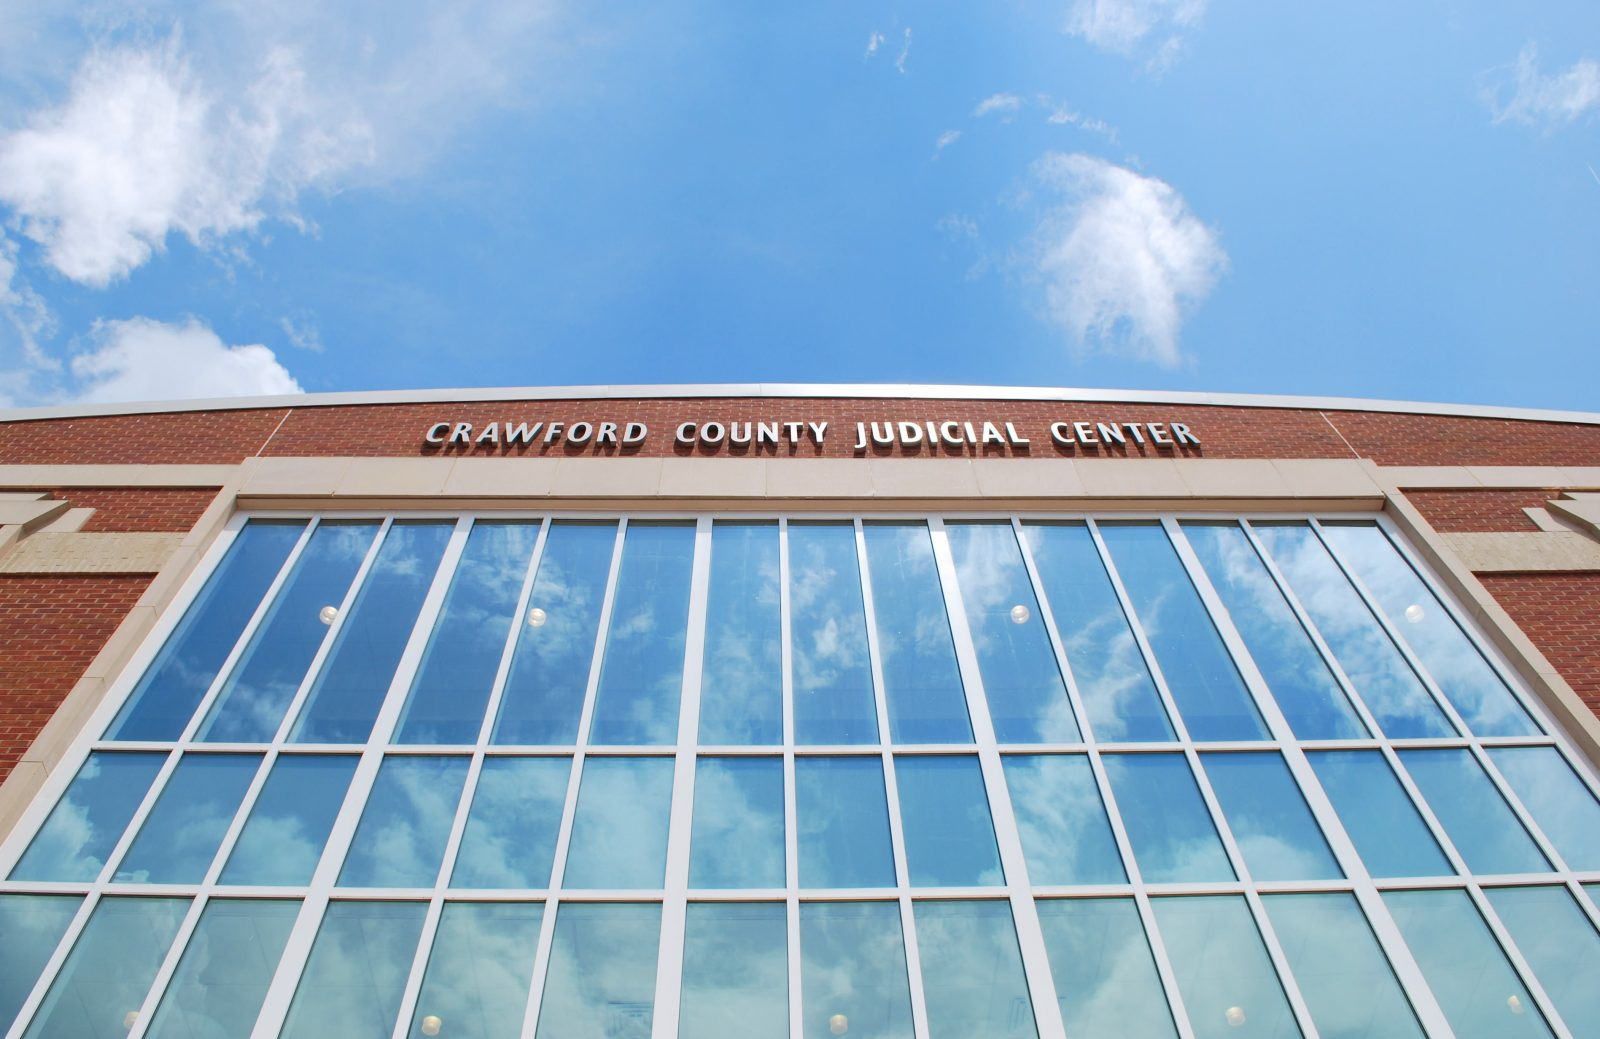 Crawford County Judicial Center